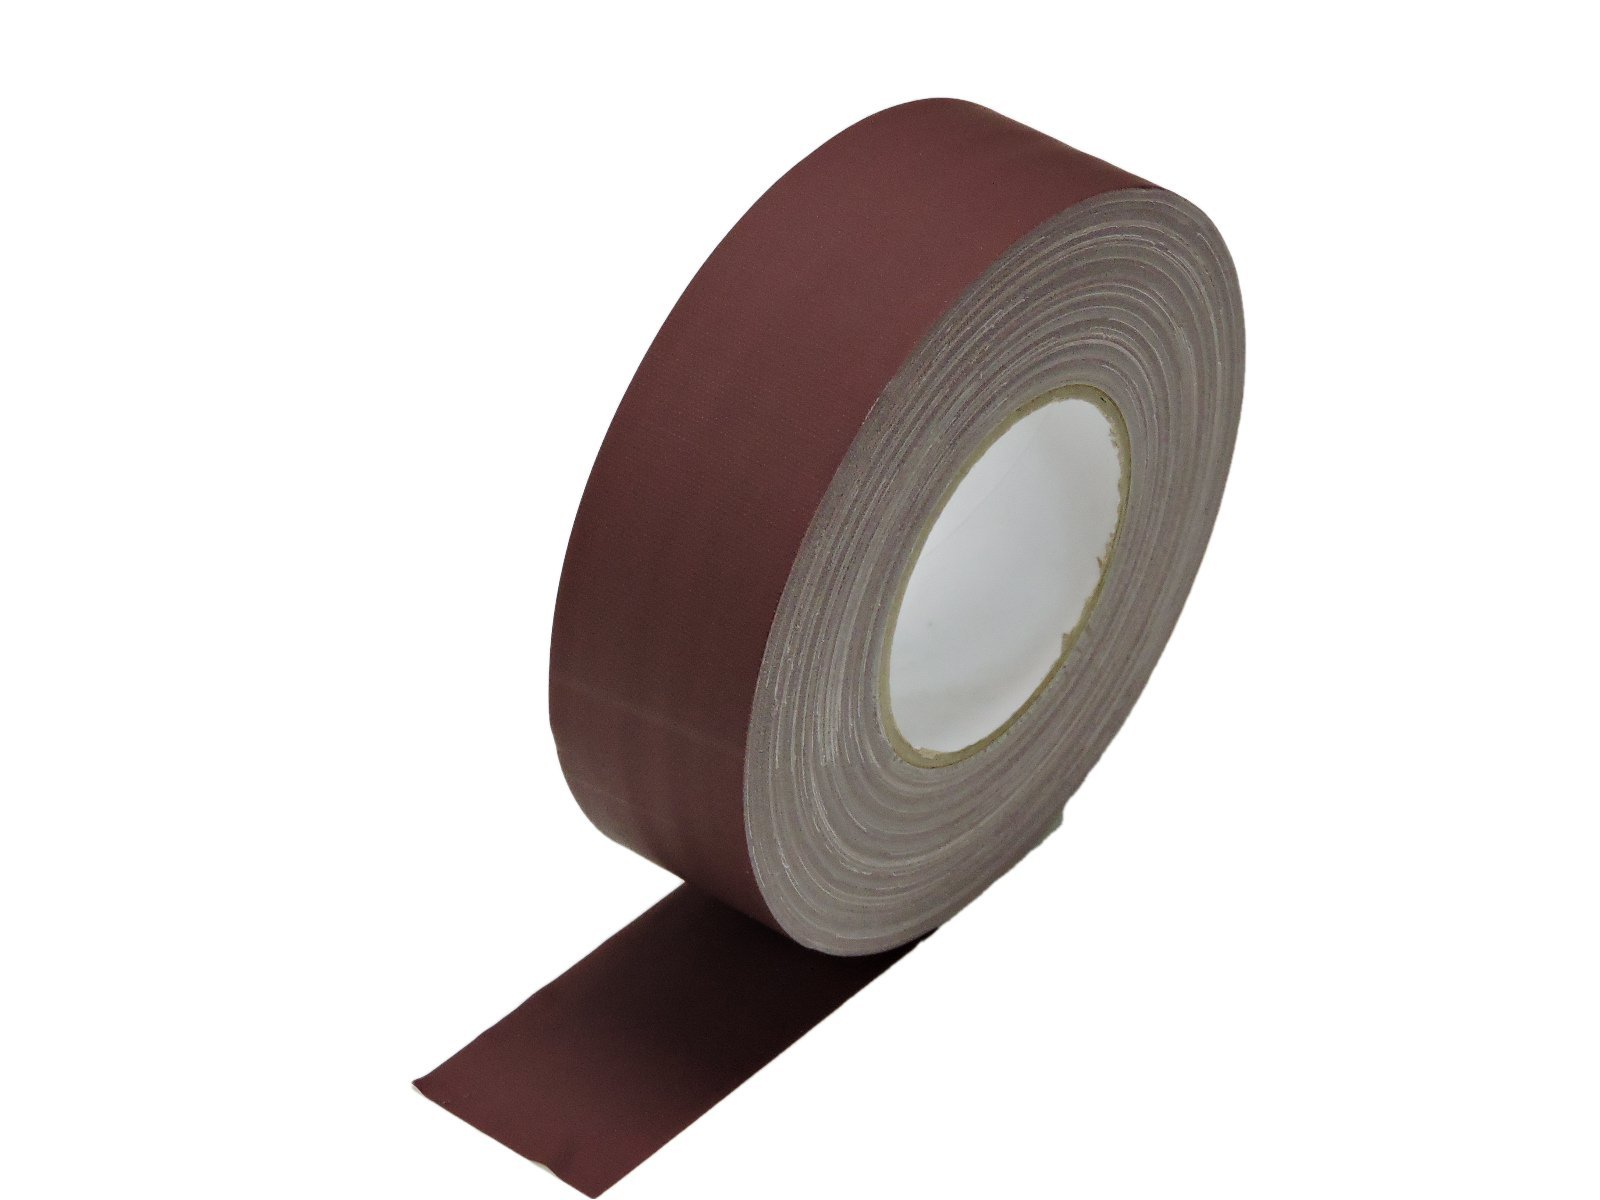 2'' x 60 yd Burgundy Maroon Gaffers Tape HEAVY 12.8 Mil Smooth Matte Finish PRO Floor Stage Gaff Tape Audio Video Theater Cloth Reinforced Rubber Adhesive Removable High Traffic No Residue 48MM X 55M